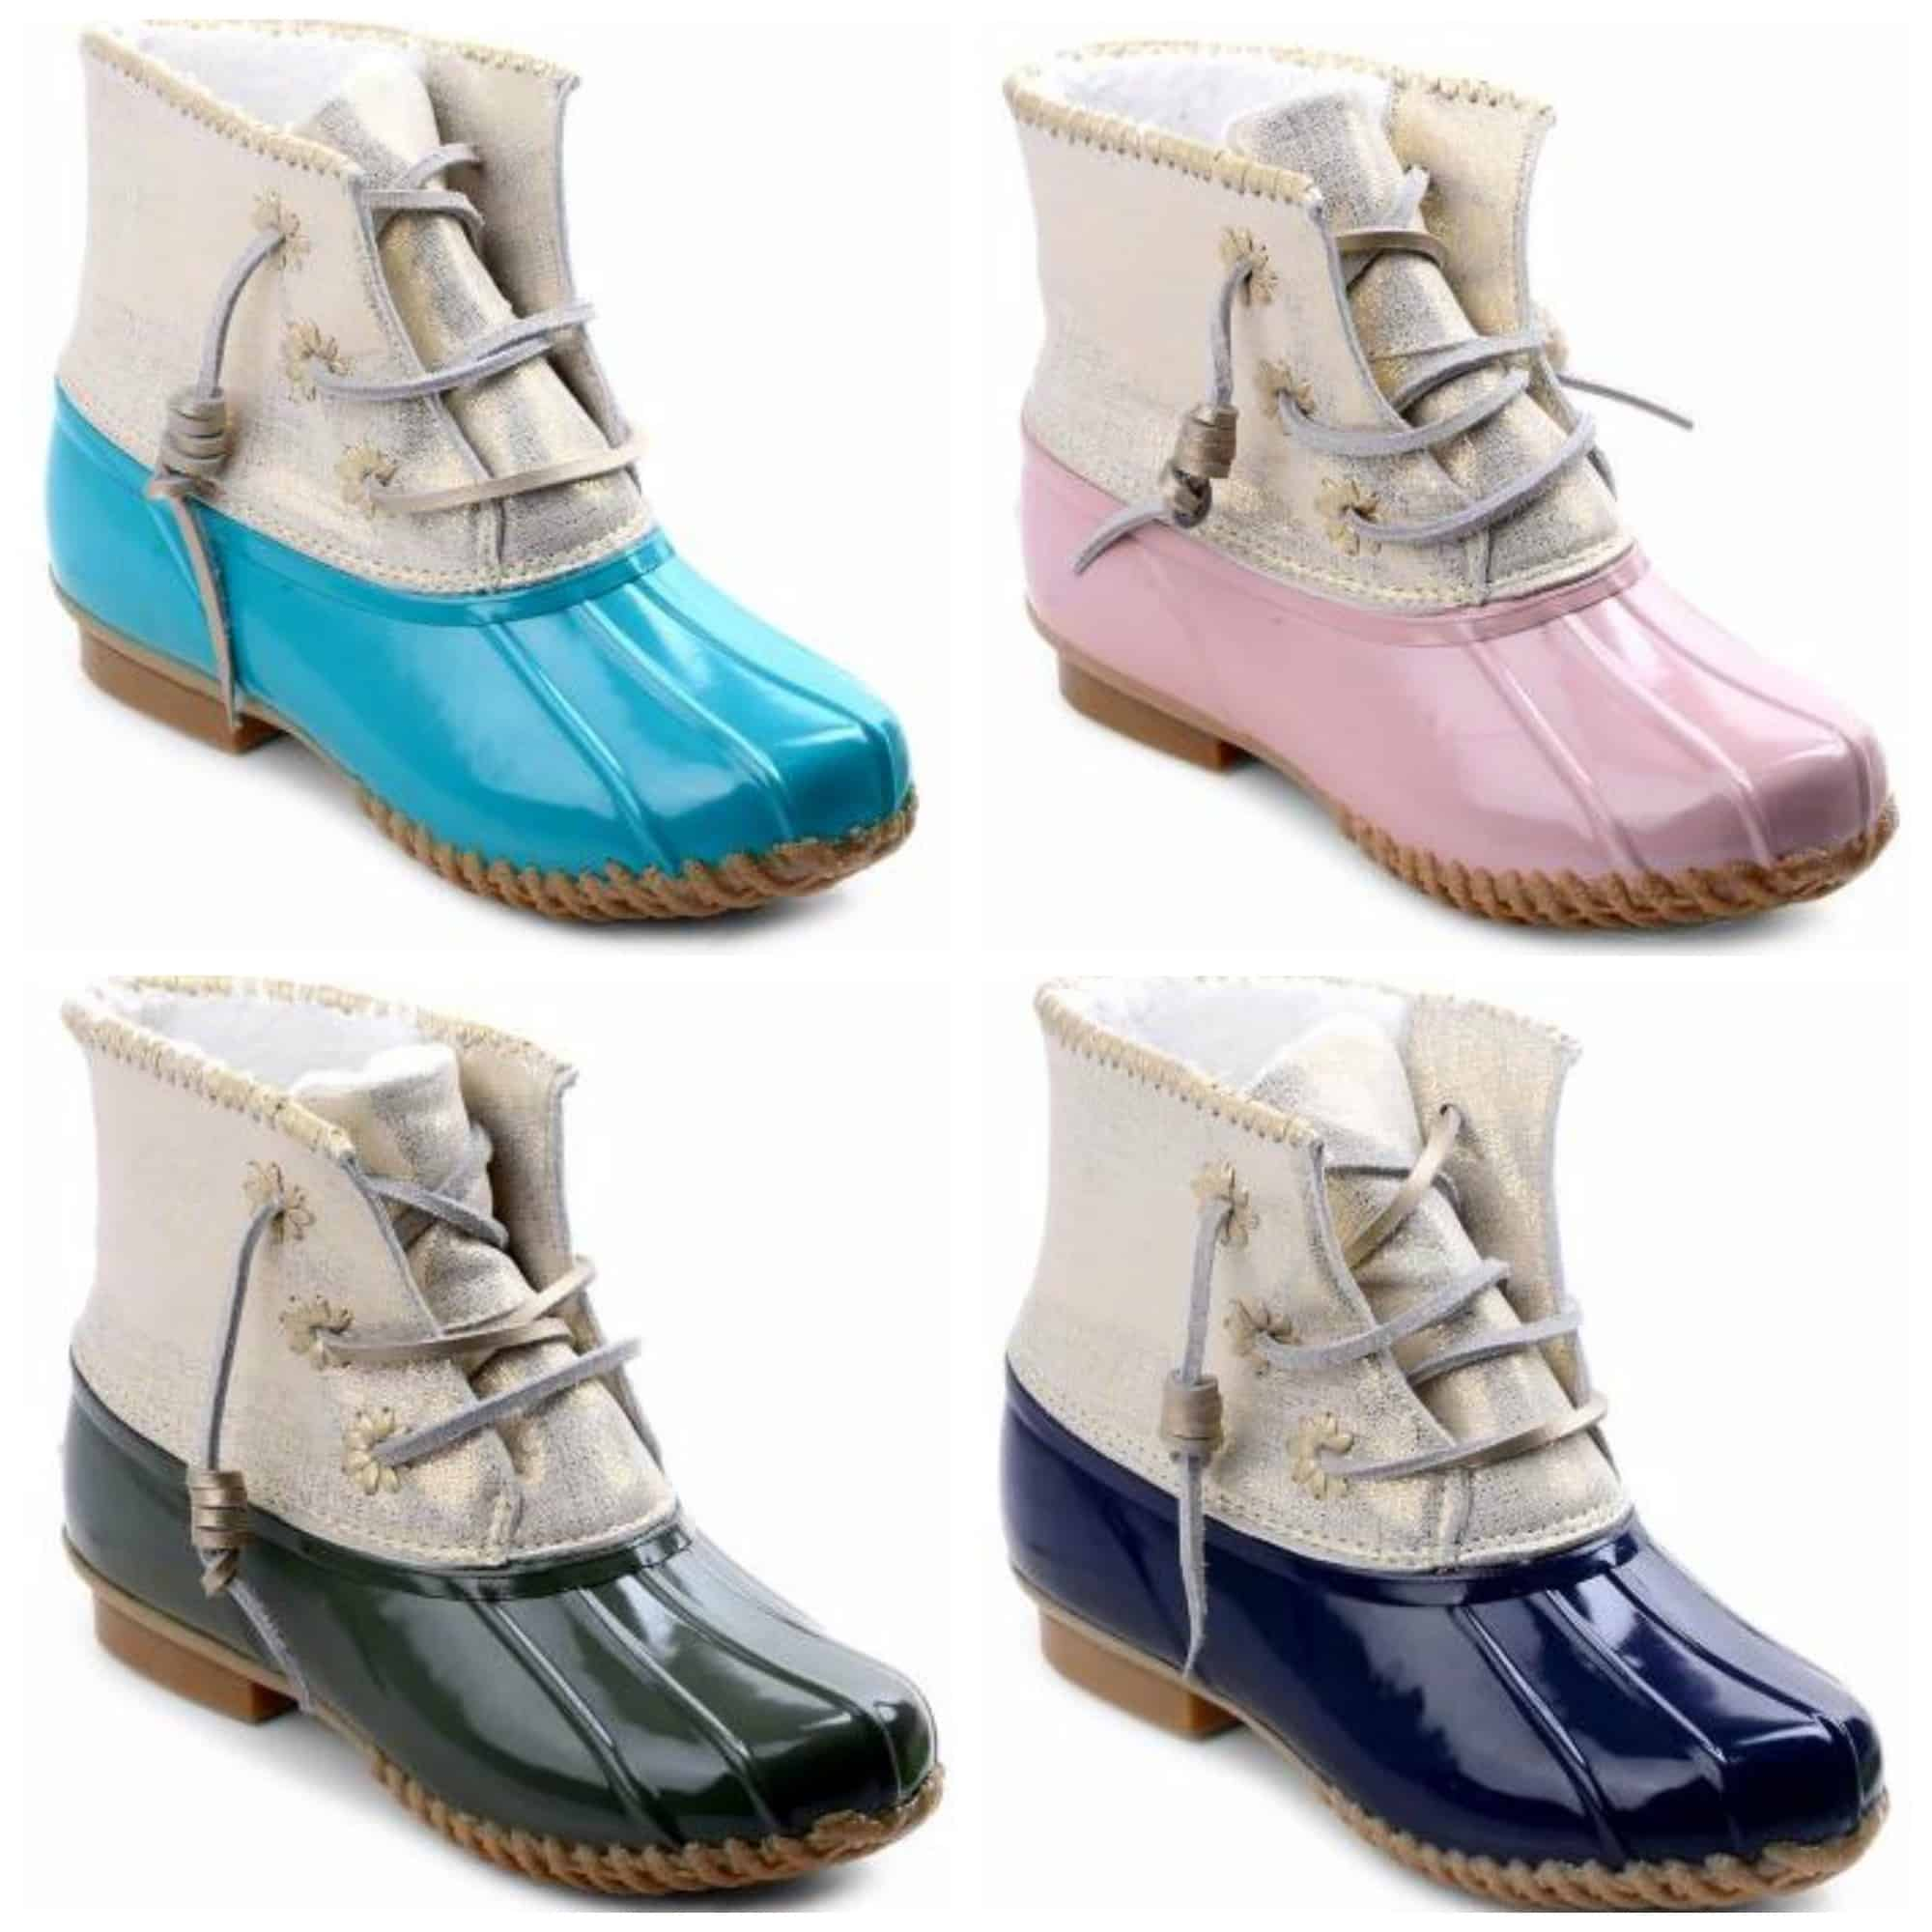 Jack Rogers Chloe Classic Whipstitch Metallic Leather Amp Rubber Boots 59 From 118